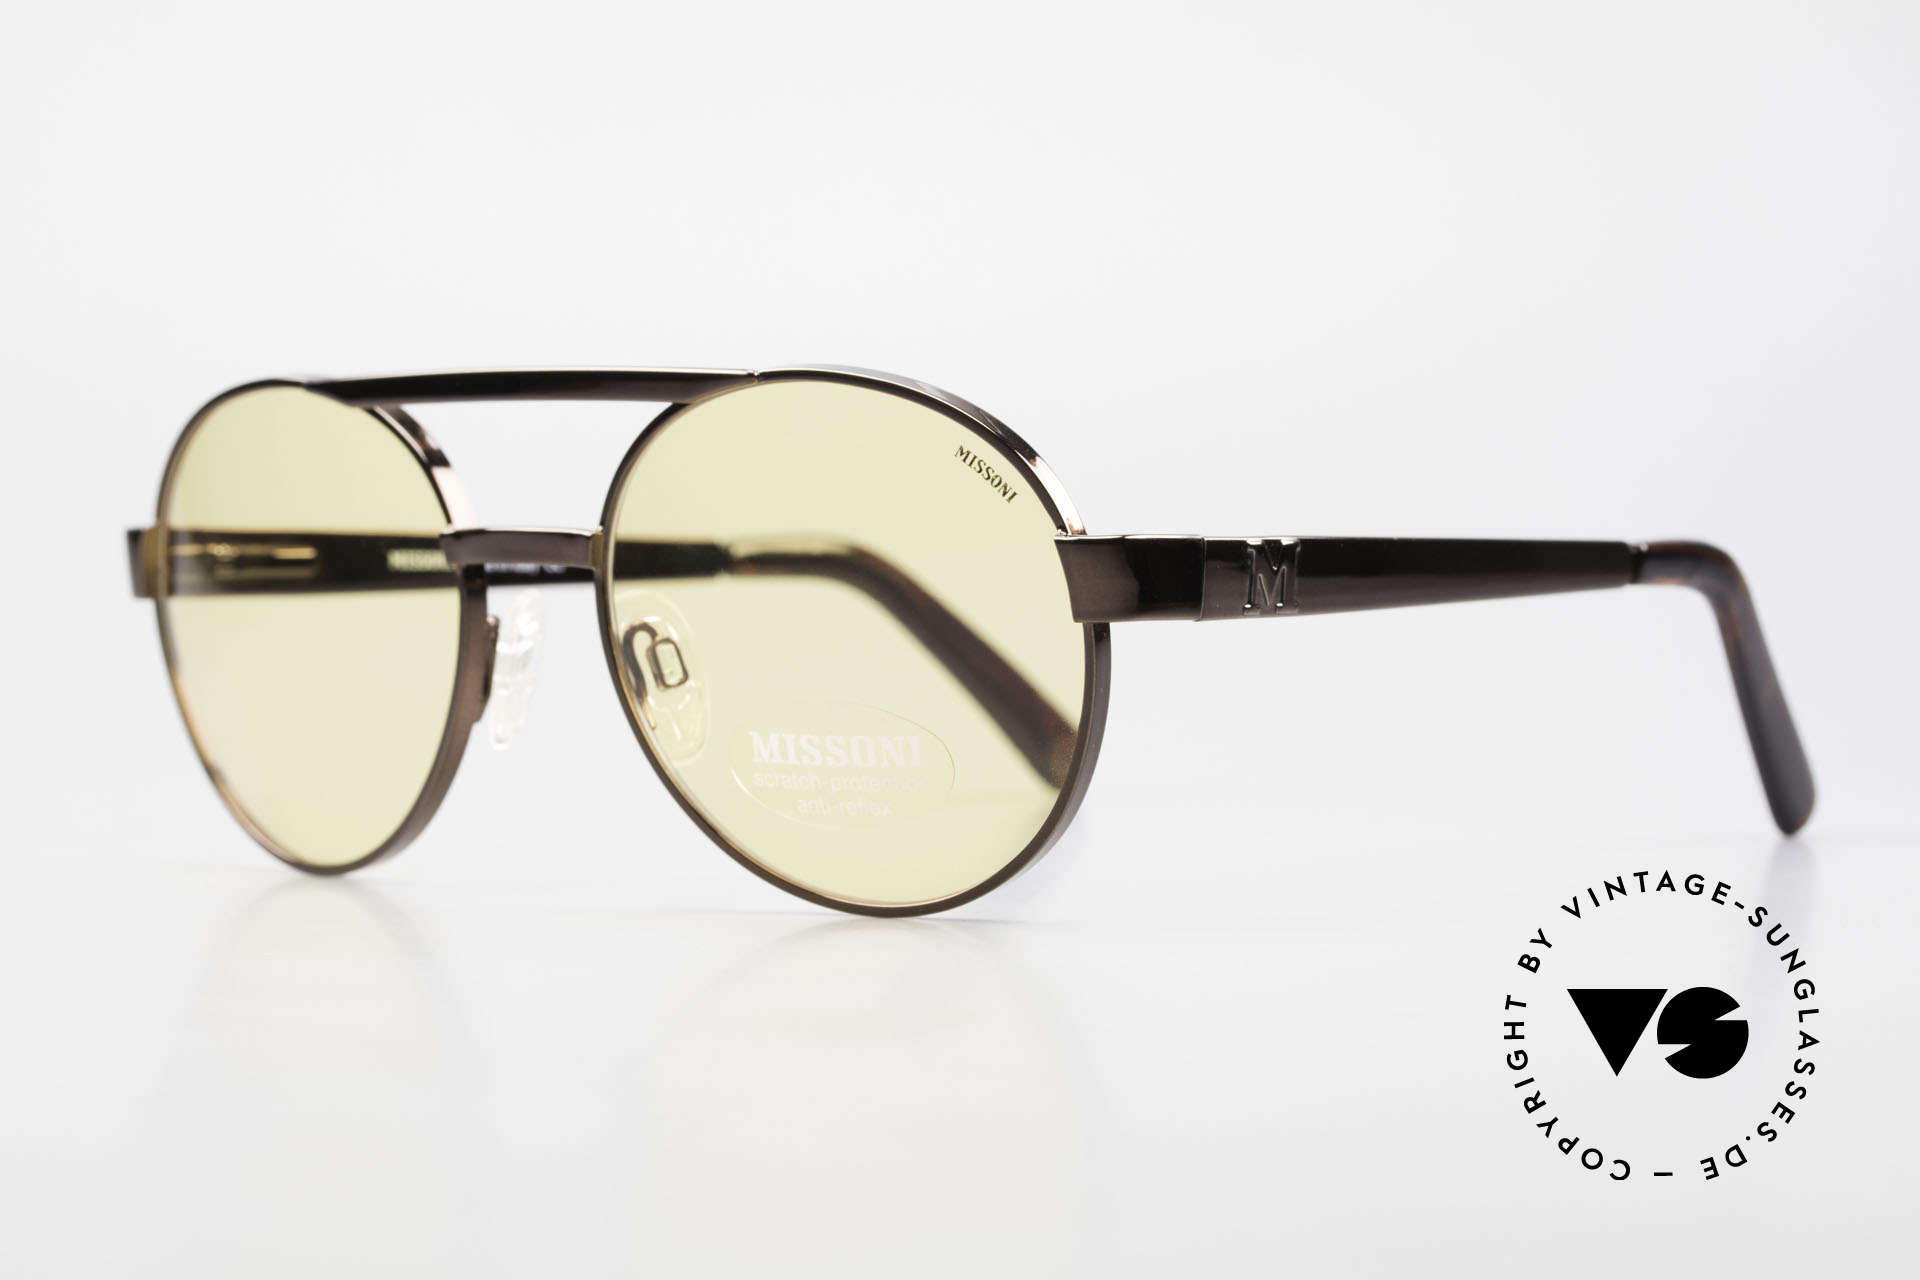 Missoni 0099 Round Panto 90's Sunglasses, very high wearing comfort thanks to spring hinges, Made for Men